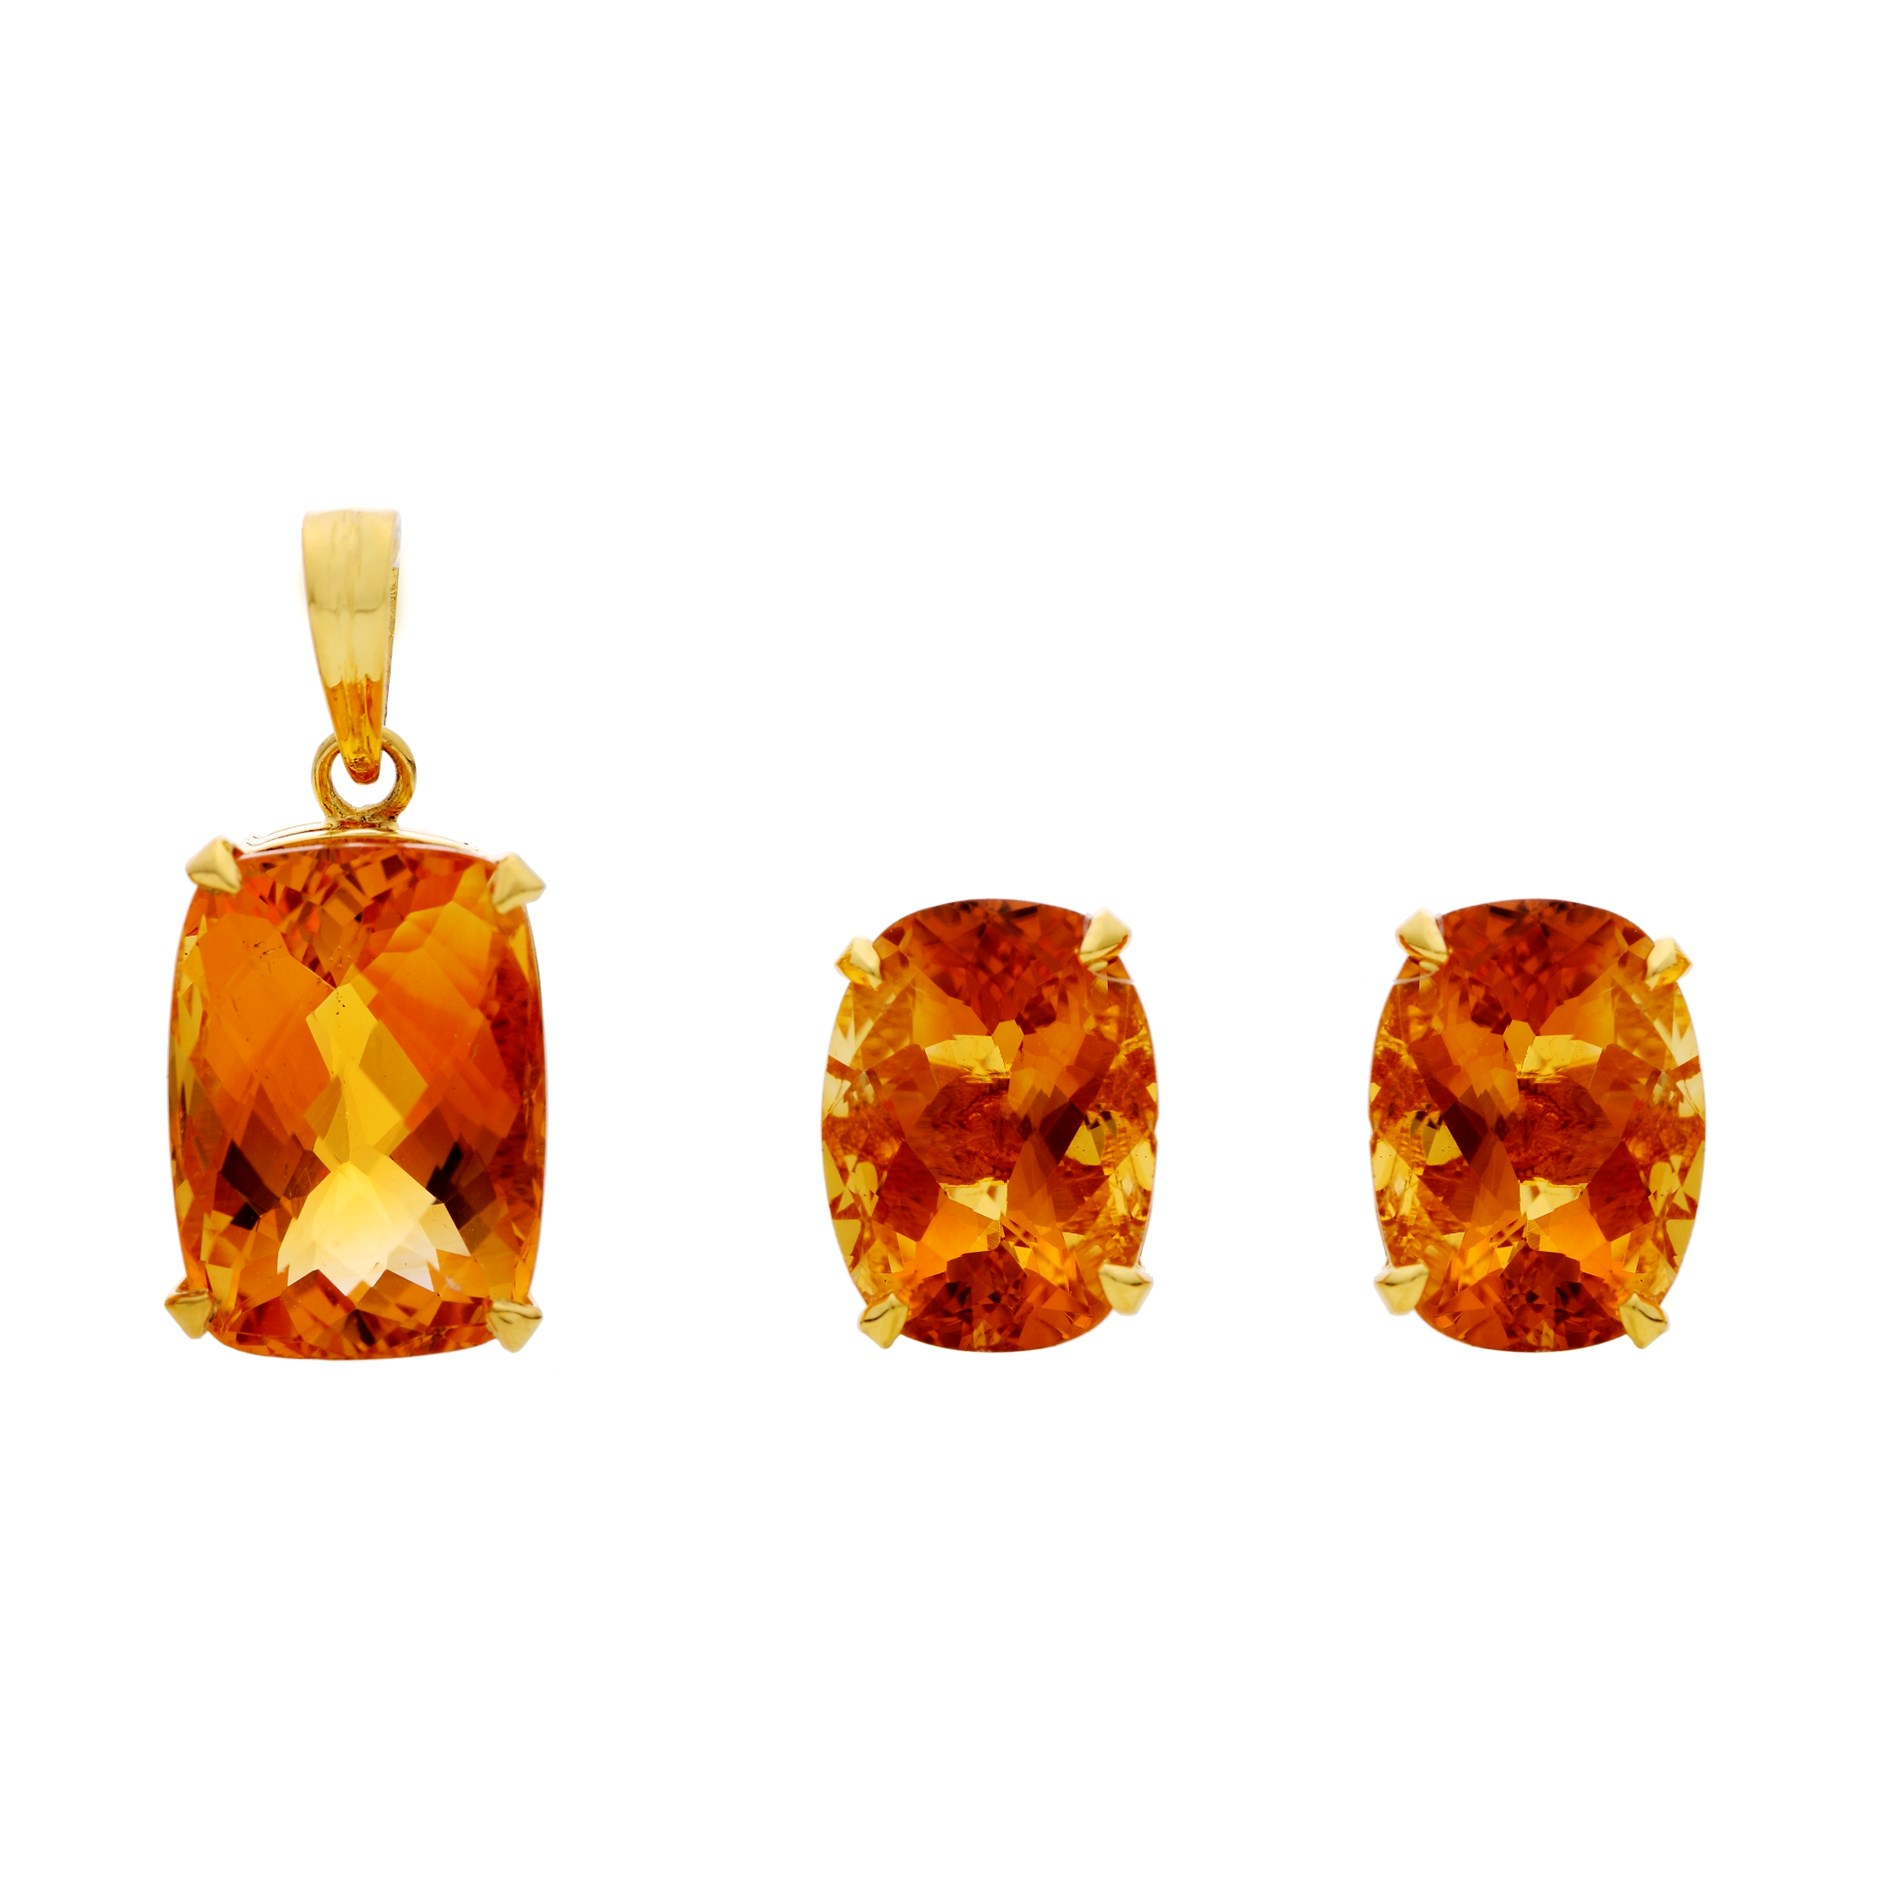 Buy Golden Topaz Statement Earrings & Pendant online